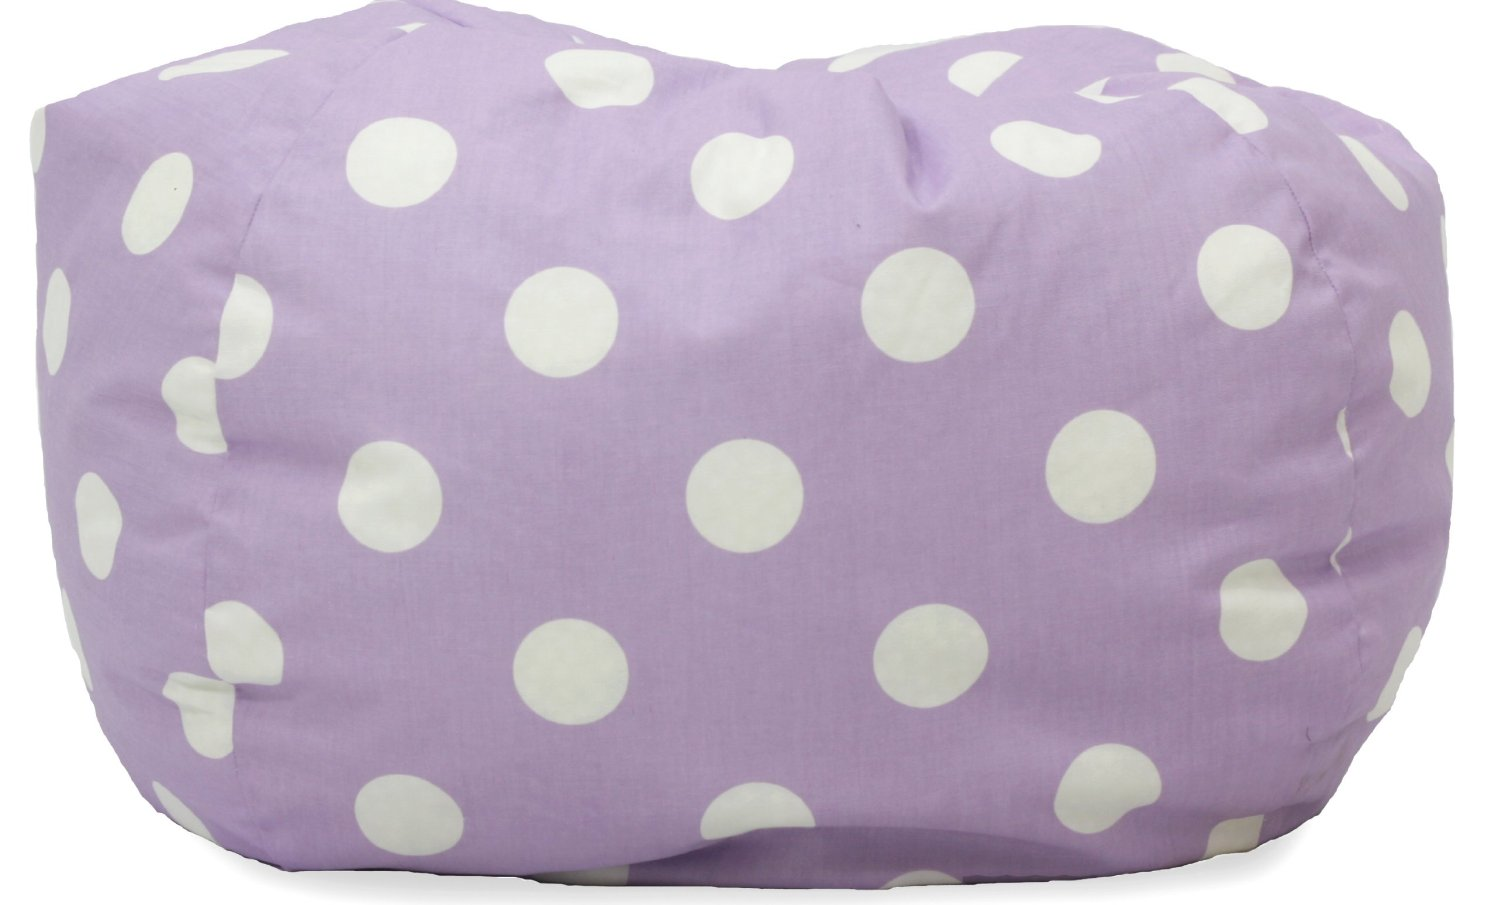 Big Joe Classic (Lavender Polka Dot) Bean Bag Chair For Kids ...